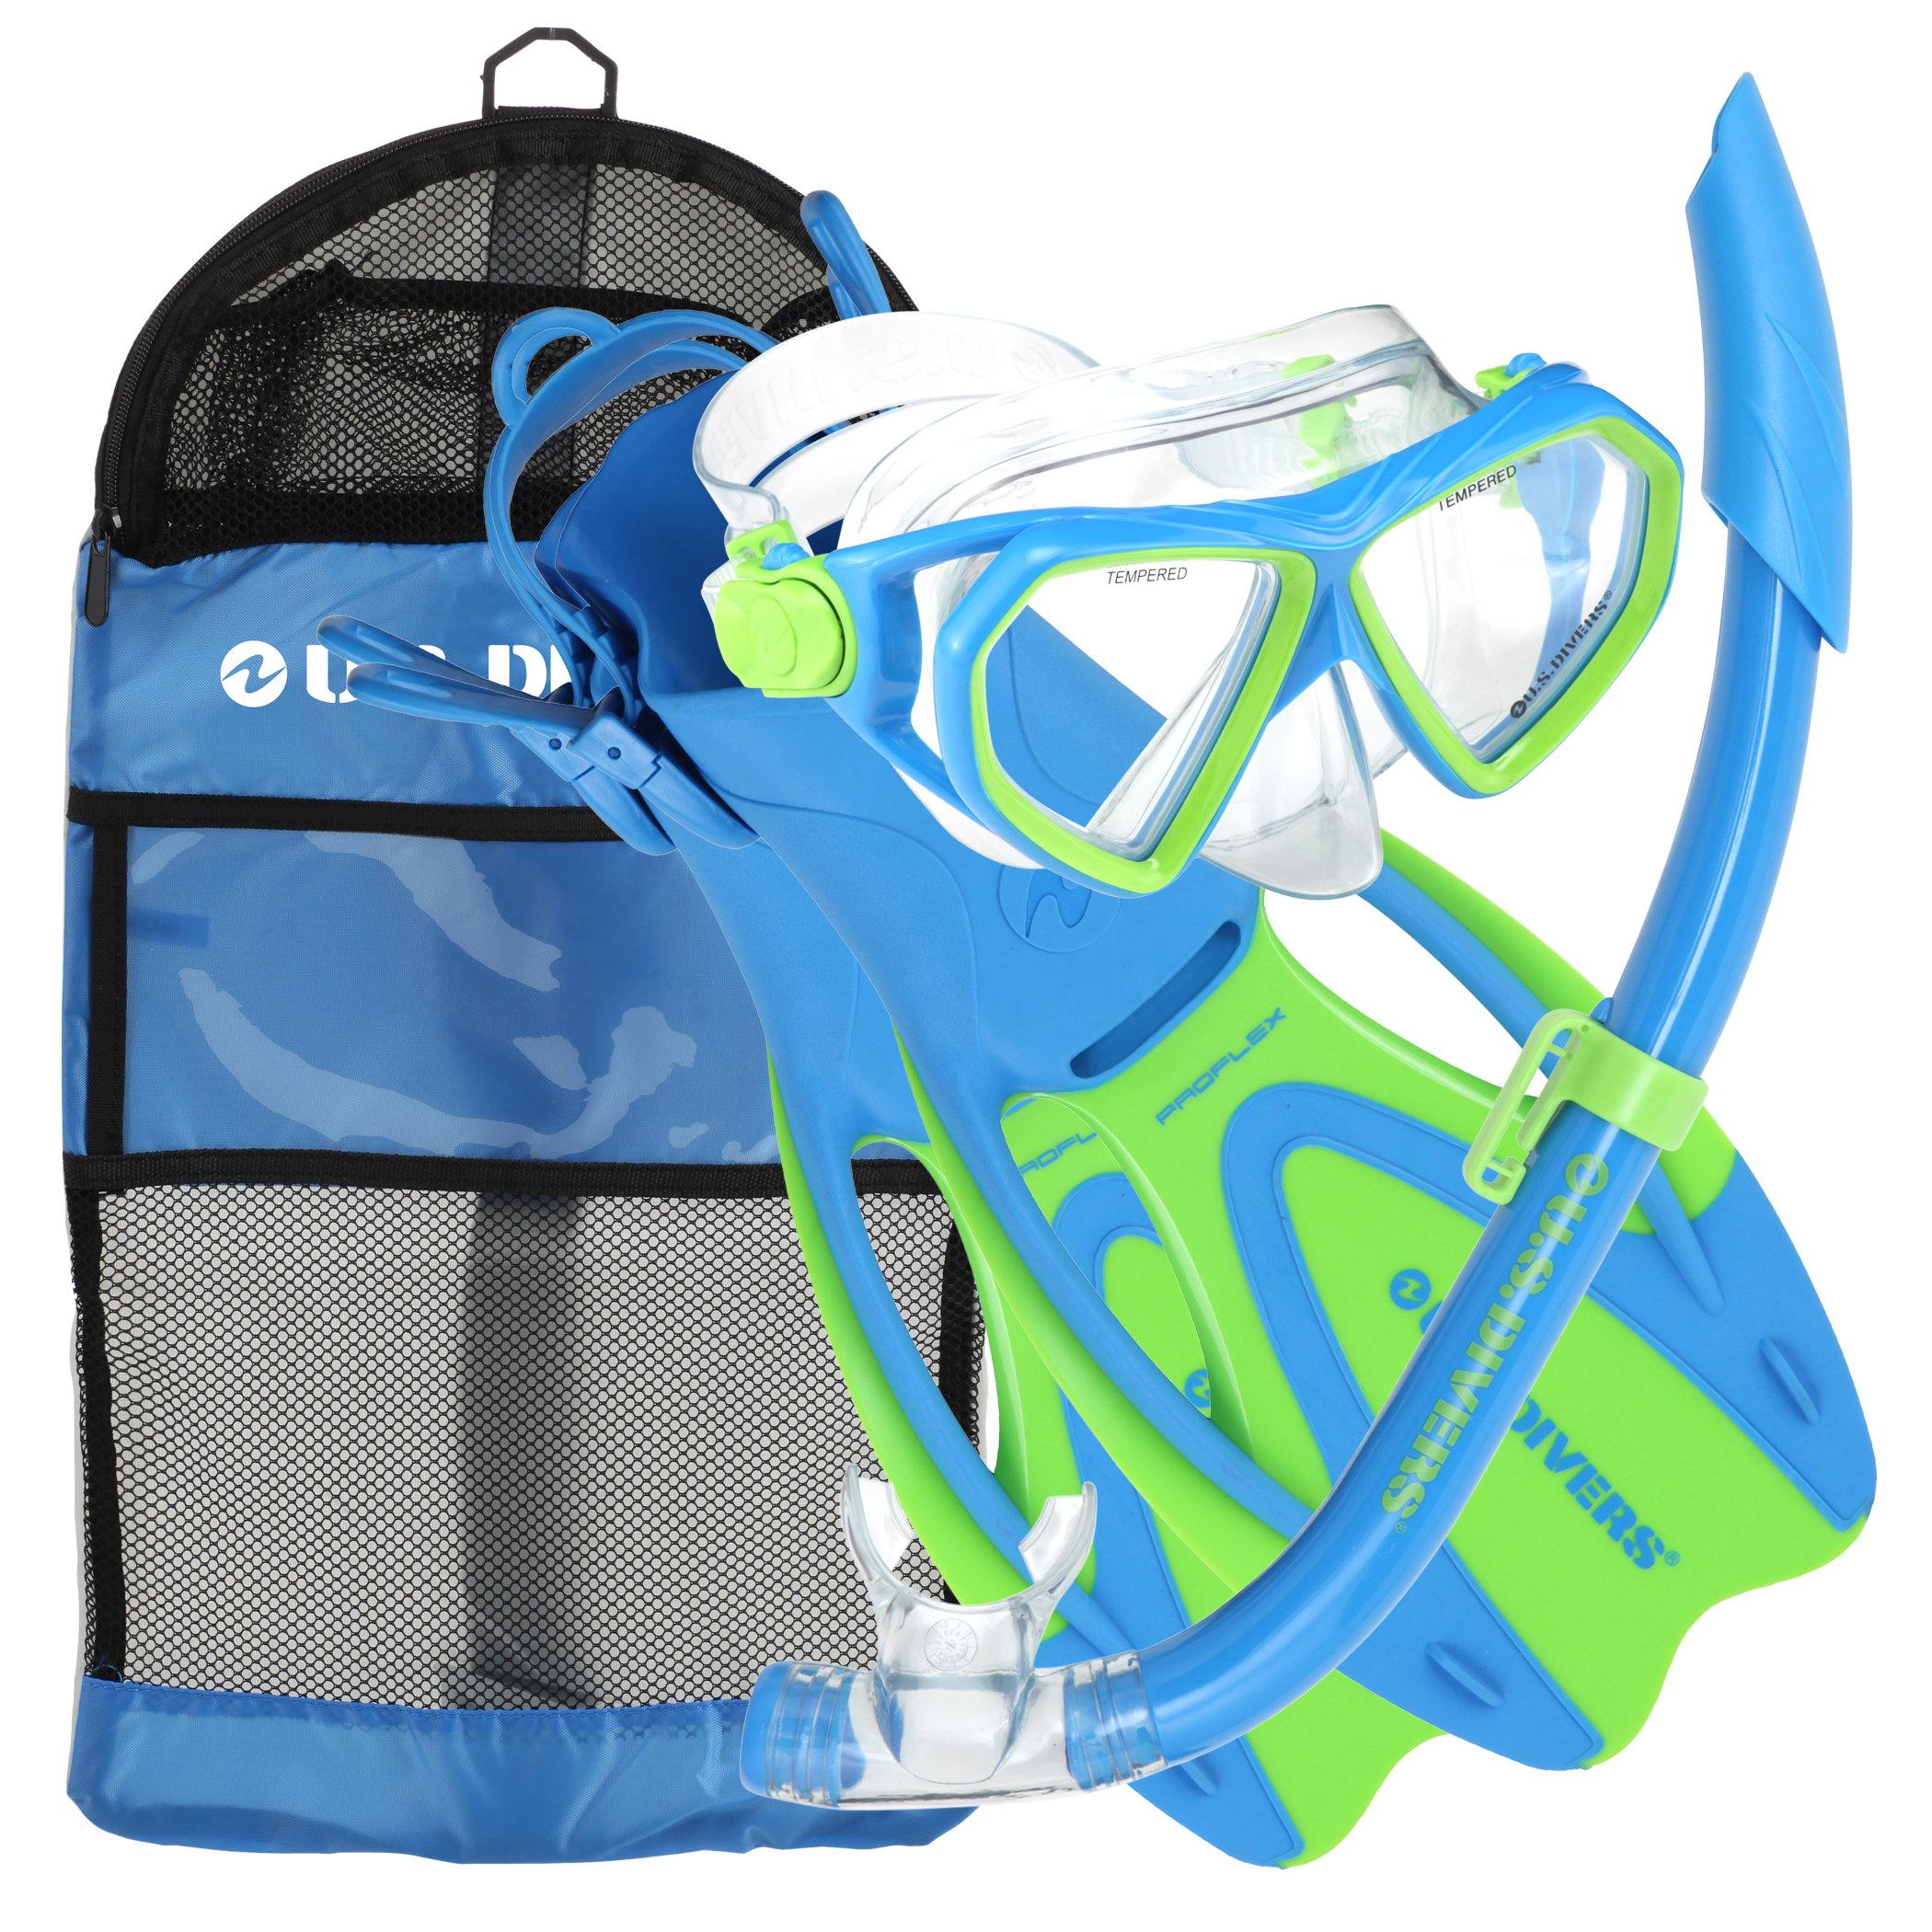 U.S. Divers Dorado JR Mask Fins Snorkel Set, Fun Blue, Medium by U.S. Divers